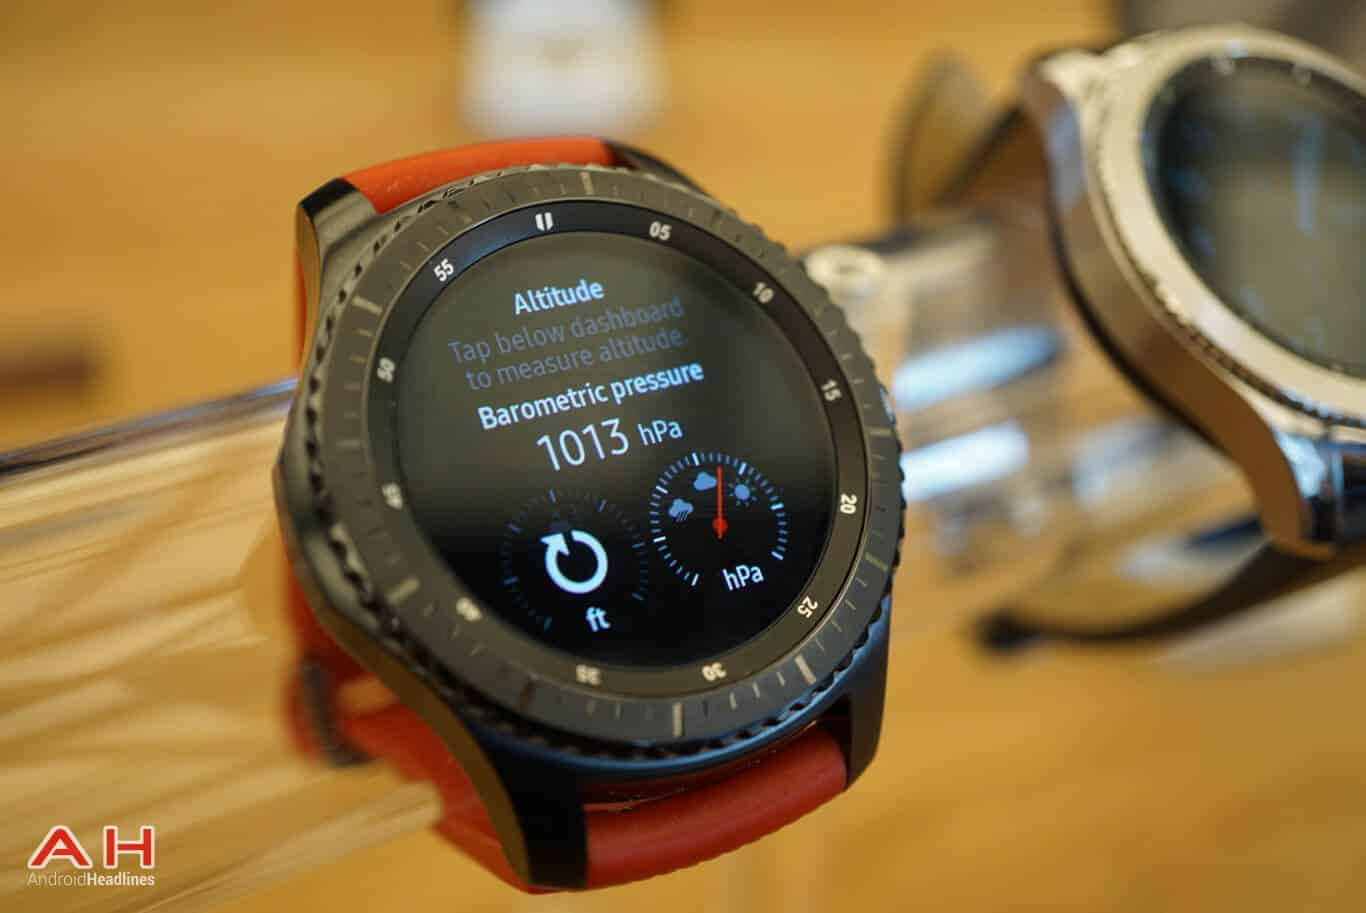 Spotify offline playback comes to the samsung gear s3 spotify offline playback comes to the samsung gear s3 biocorpaavc